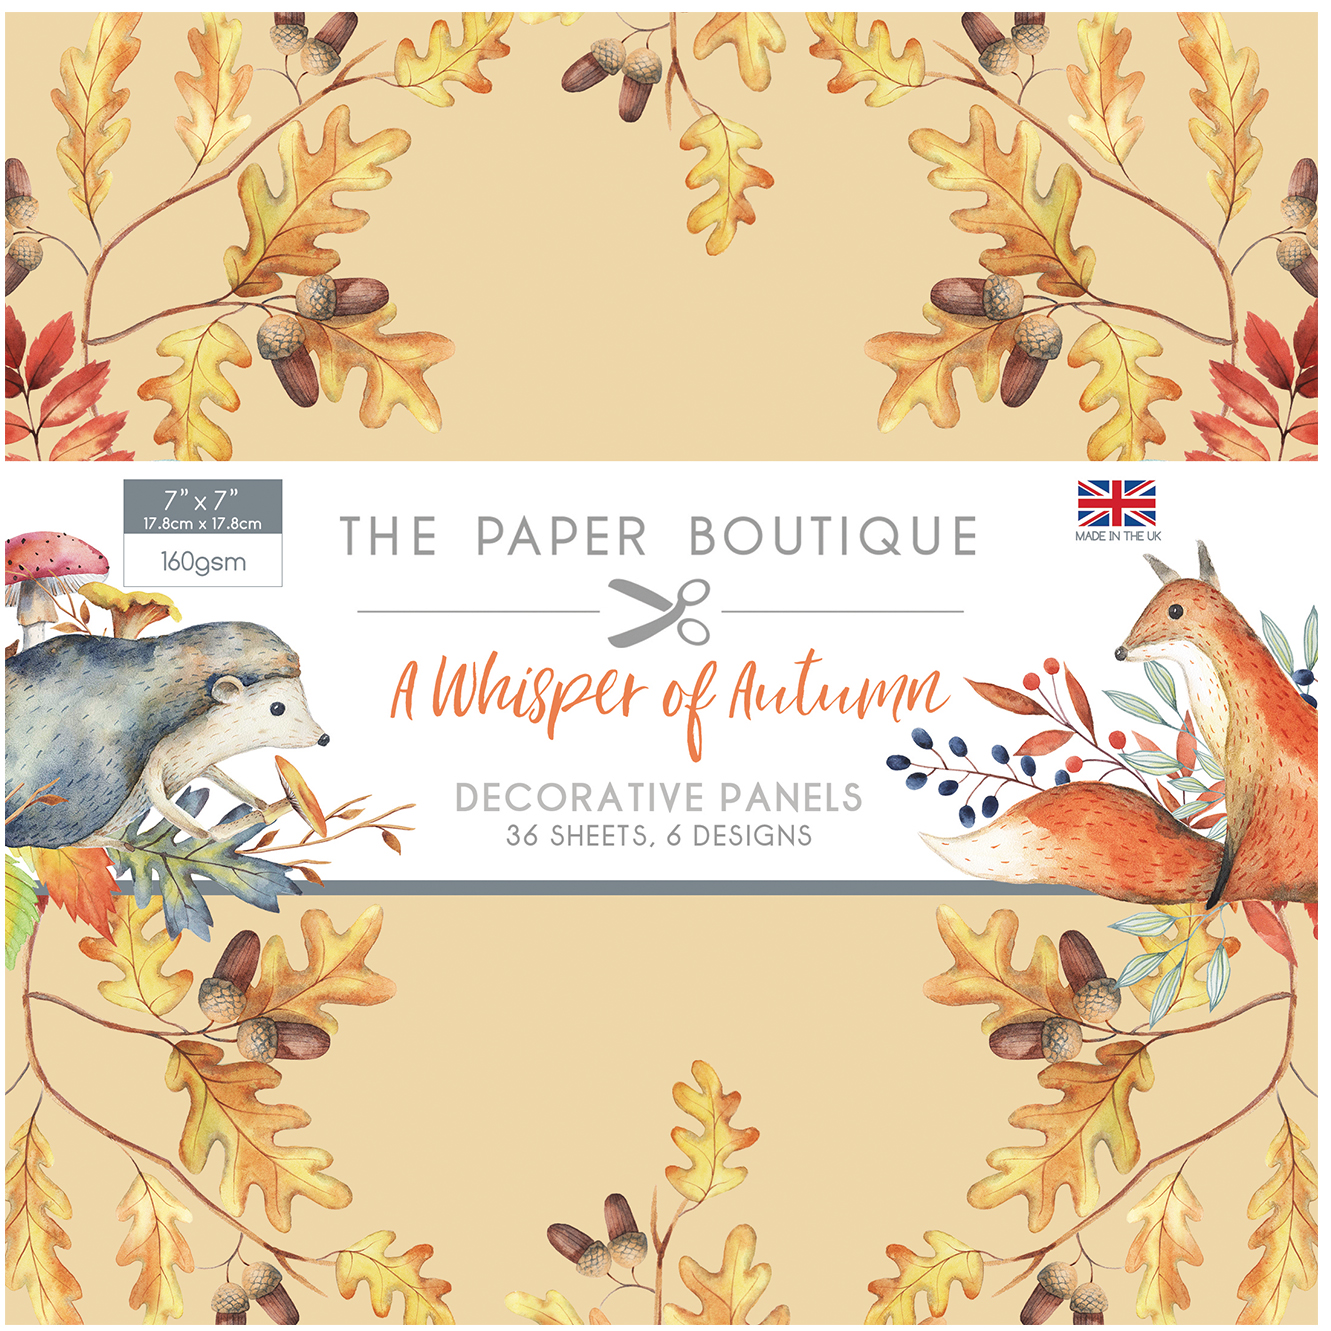 The Paper Boutique A Whisper of Autumn 7″ x 7″ Panel Pad